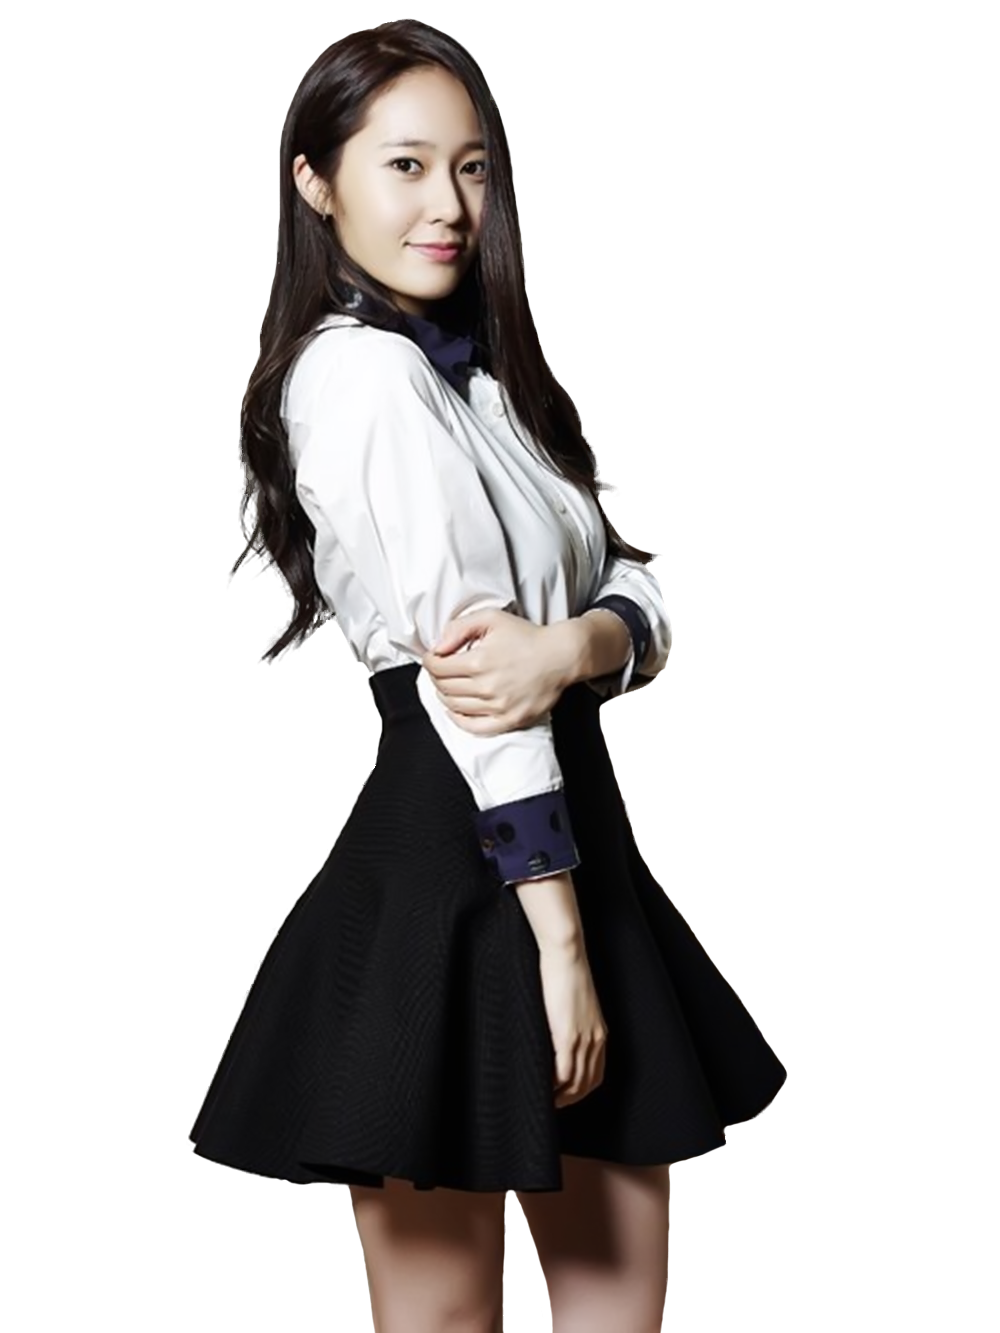 Krystal Jung f(x) render by HikariKida on DeviantArt